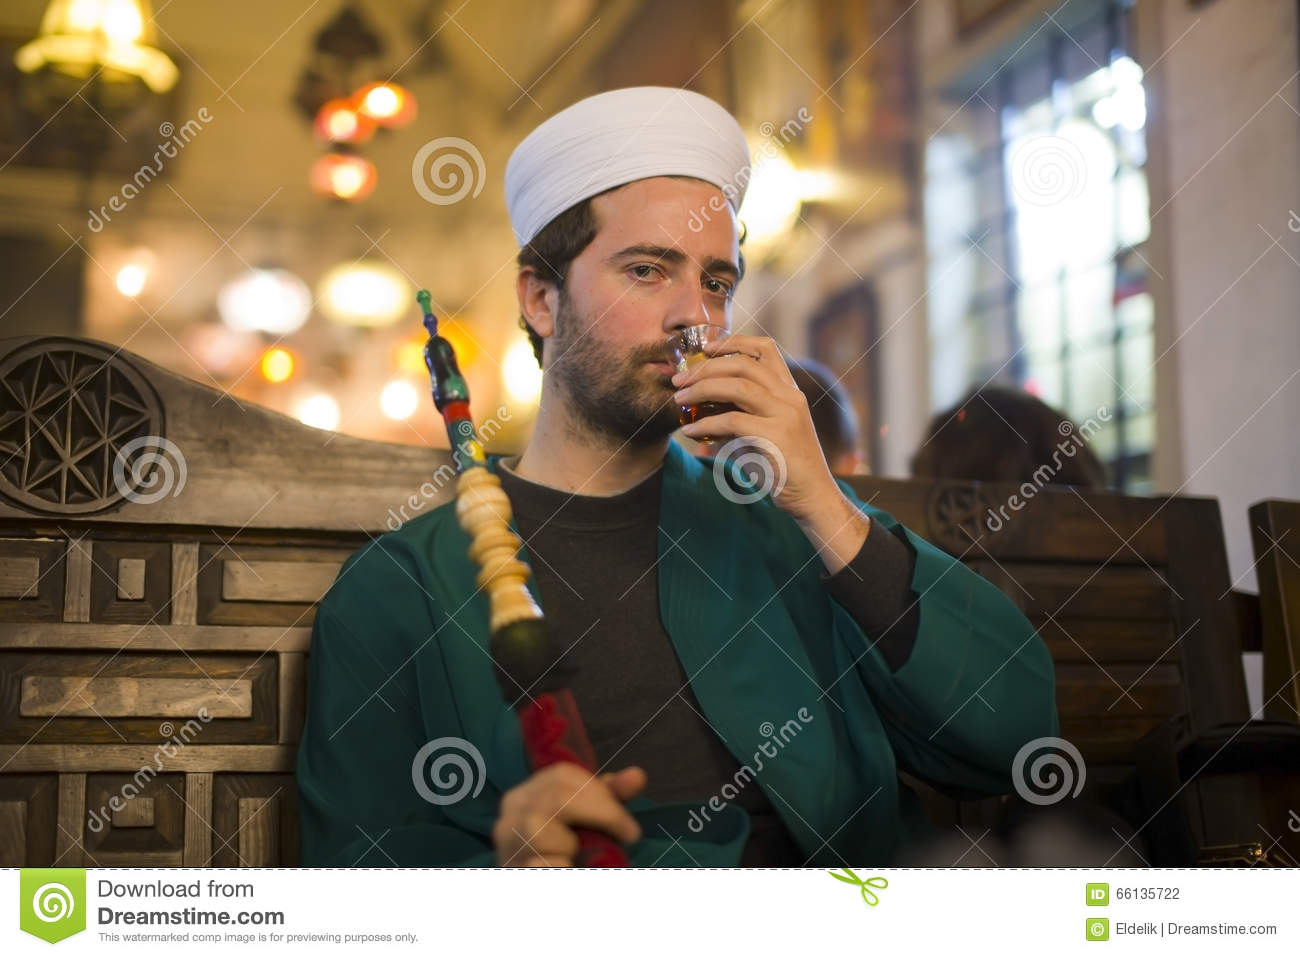 tea muslim single men How to cope with feelings of loneliness as a single  i know there are tons of muslim women (as well as men)  purify your gaze has built a revolutionary.